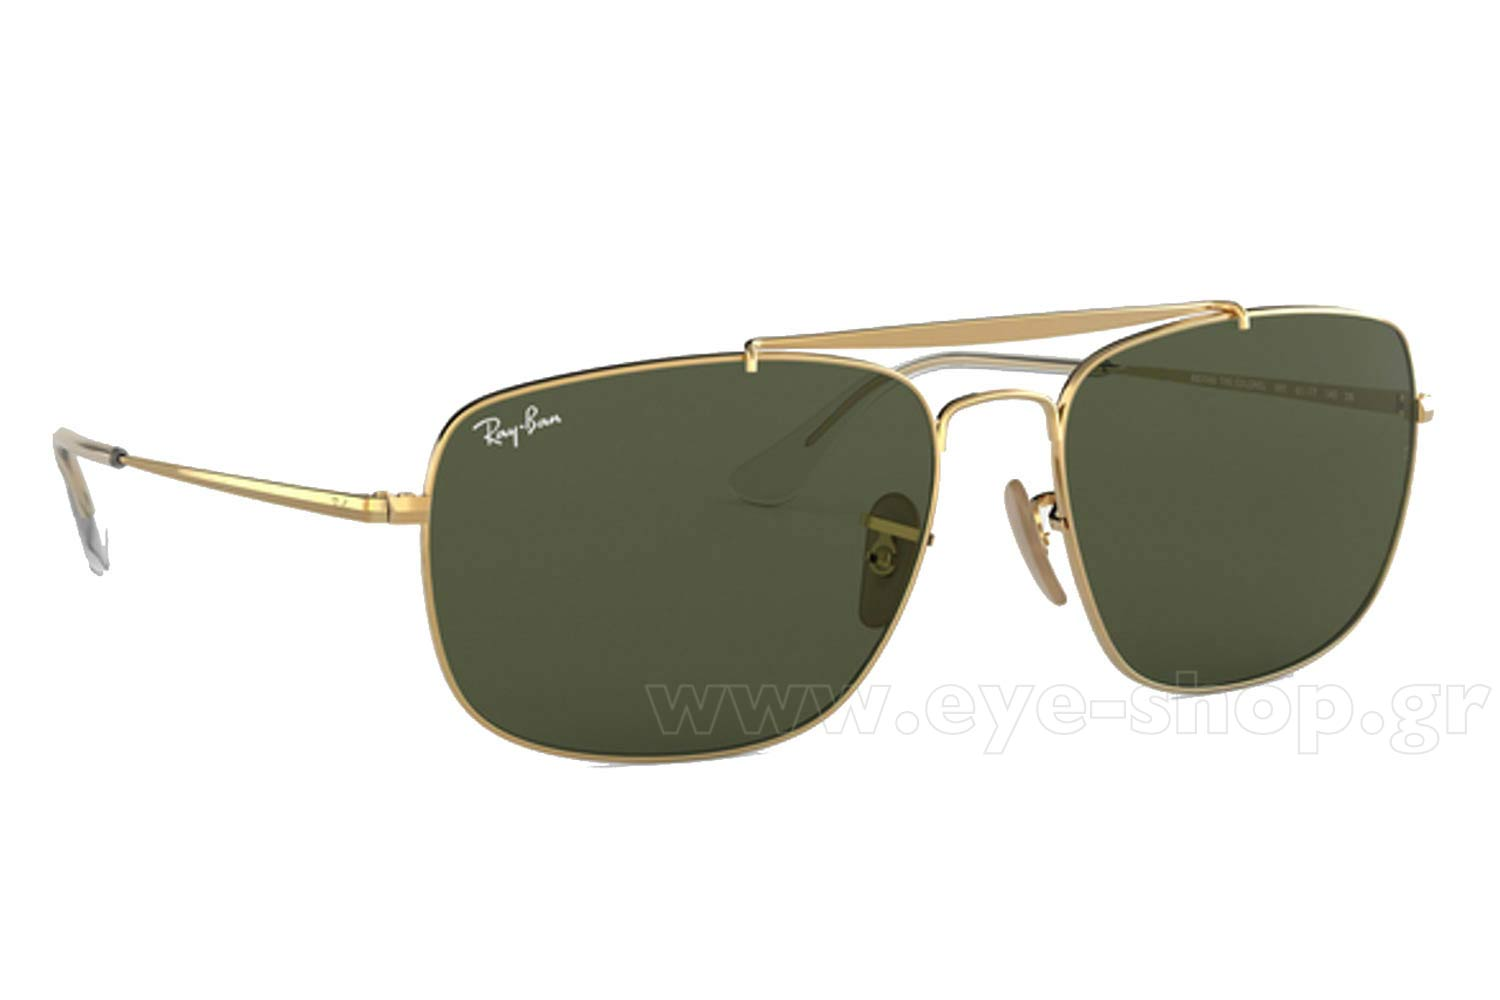 c65be1bd48 SUNGLASSES Rayban 3560 THE COLONEL 001